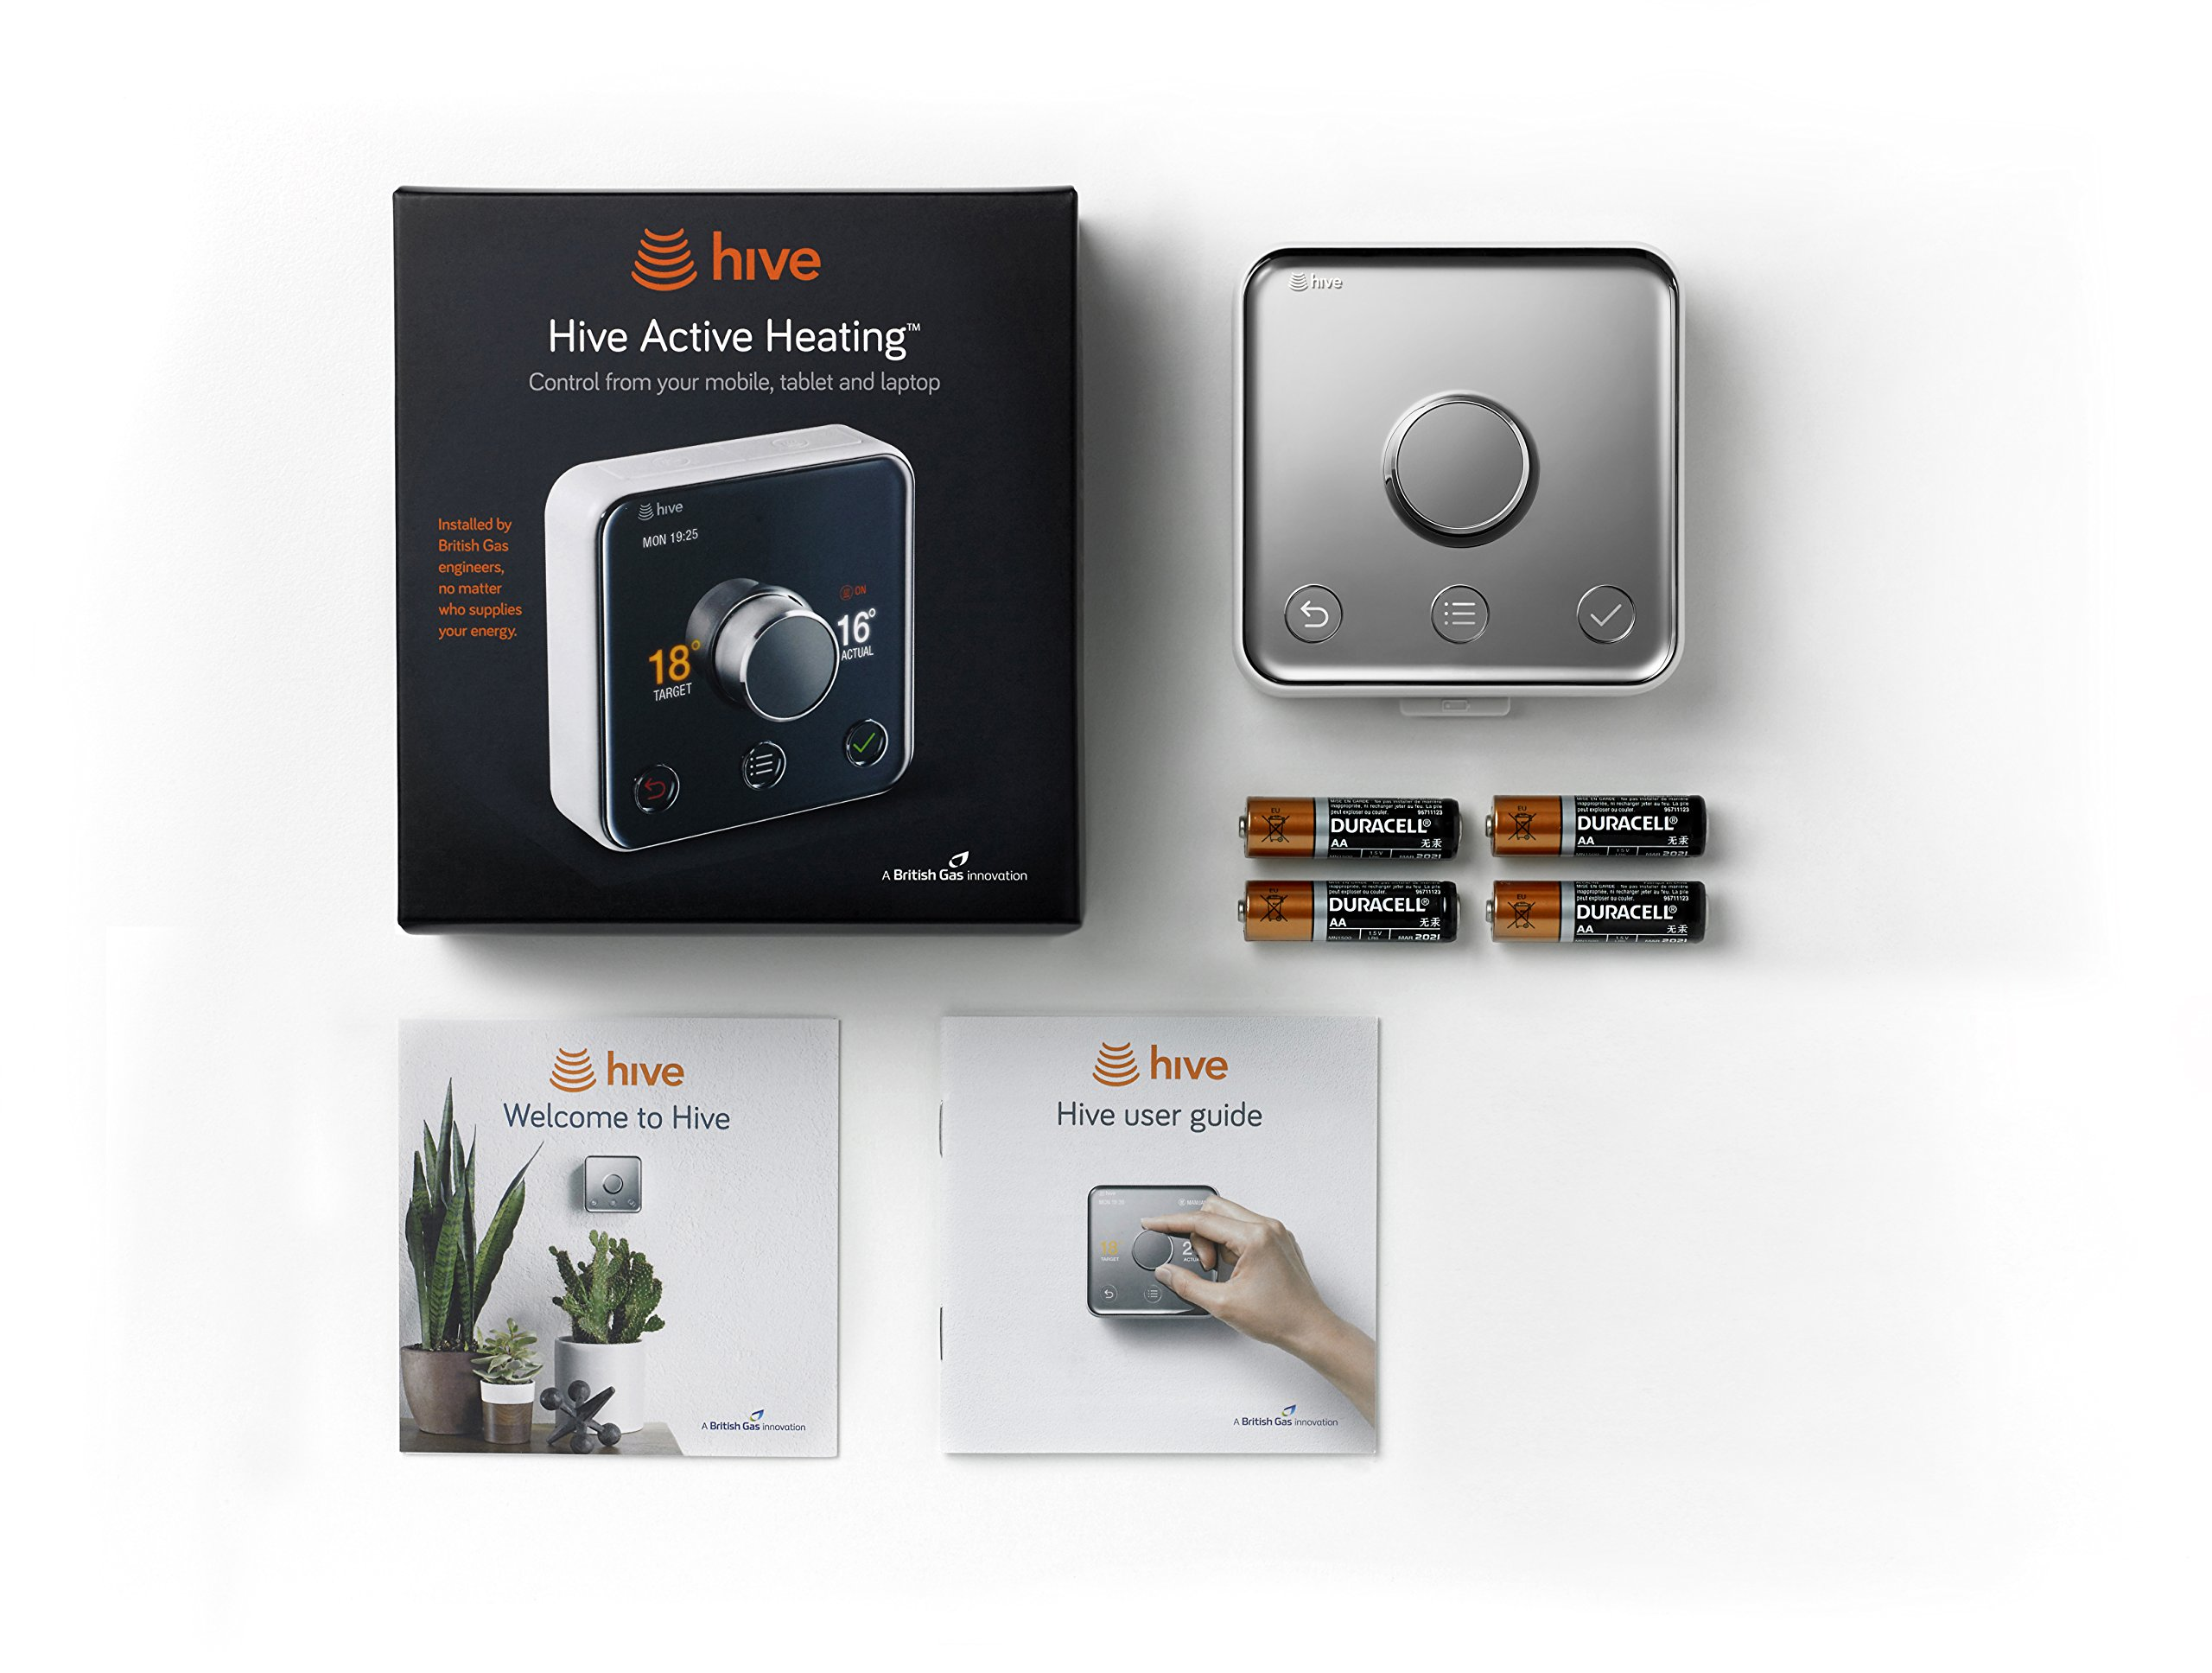 Hive Active Heating And Hot Water With Professional Installation, Works With Amazon Alexa by Hive (Image #10)